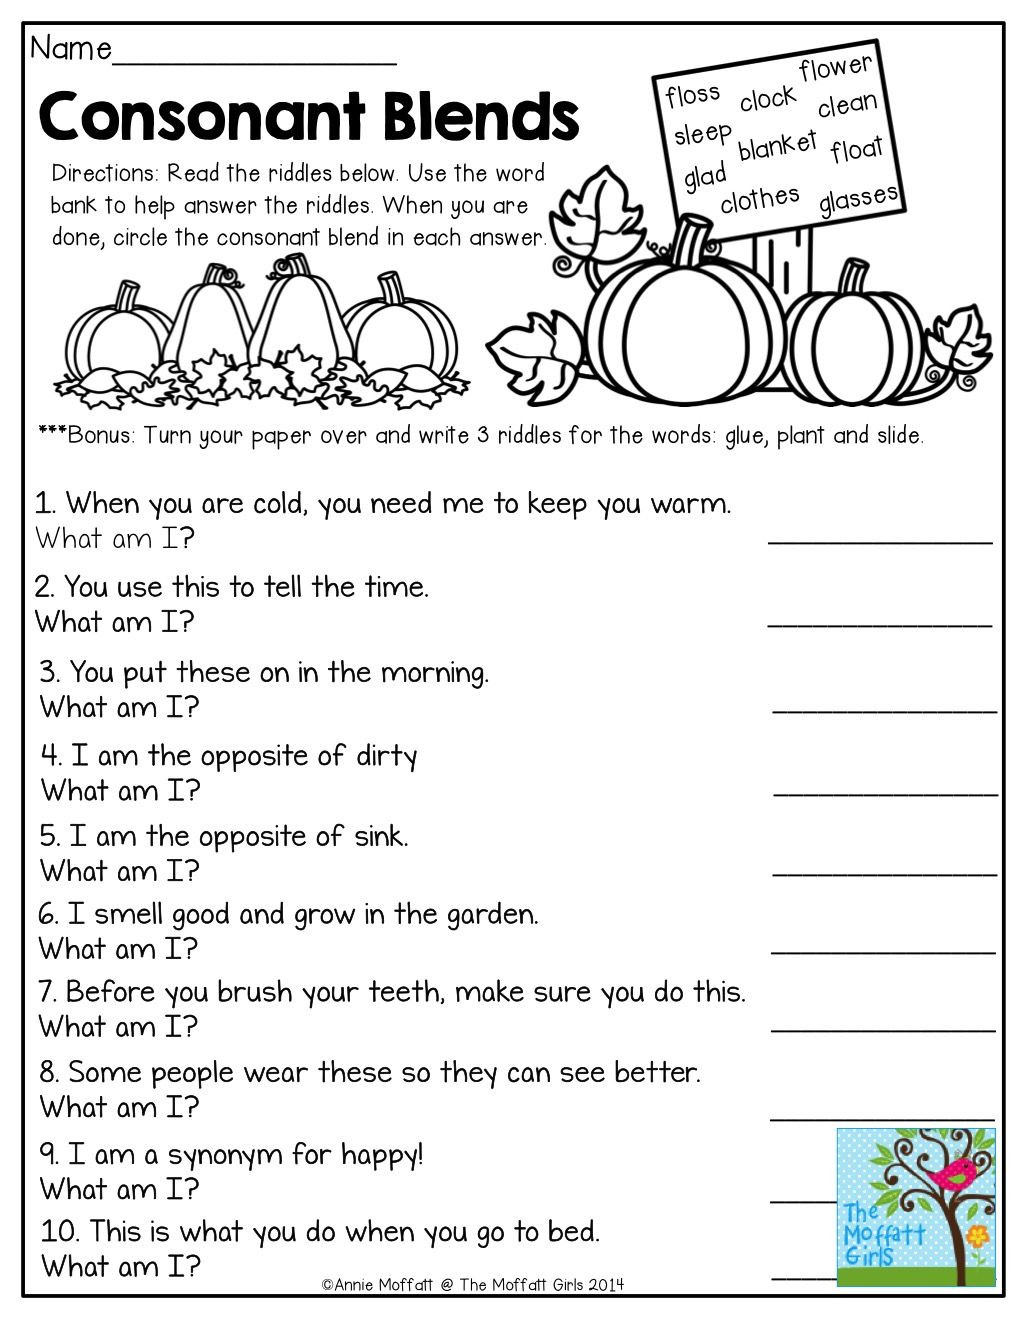 Consonant Blends Worksheets 3rd Grade Consonant Blends Mystery Words Read the Clues and Write the